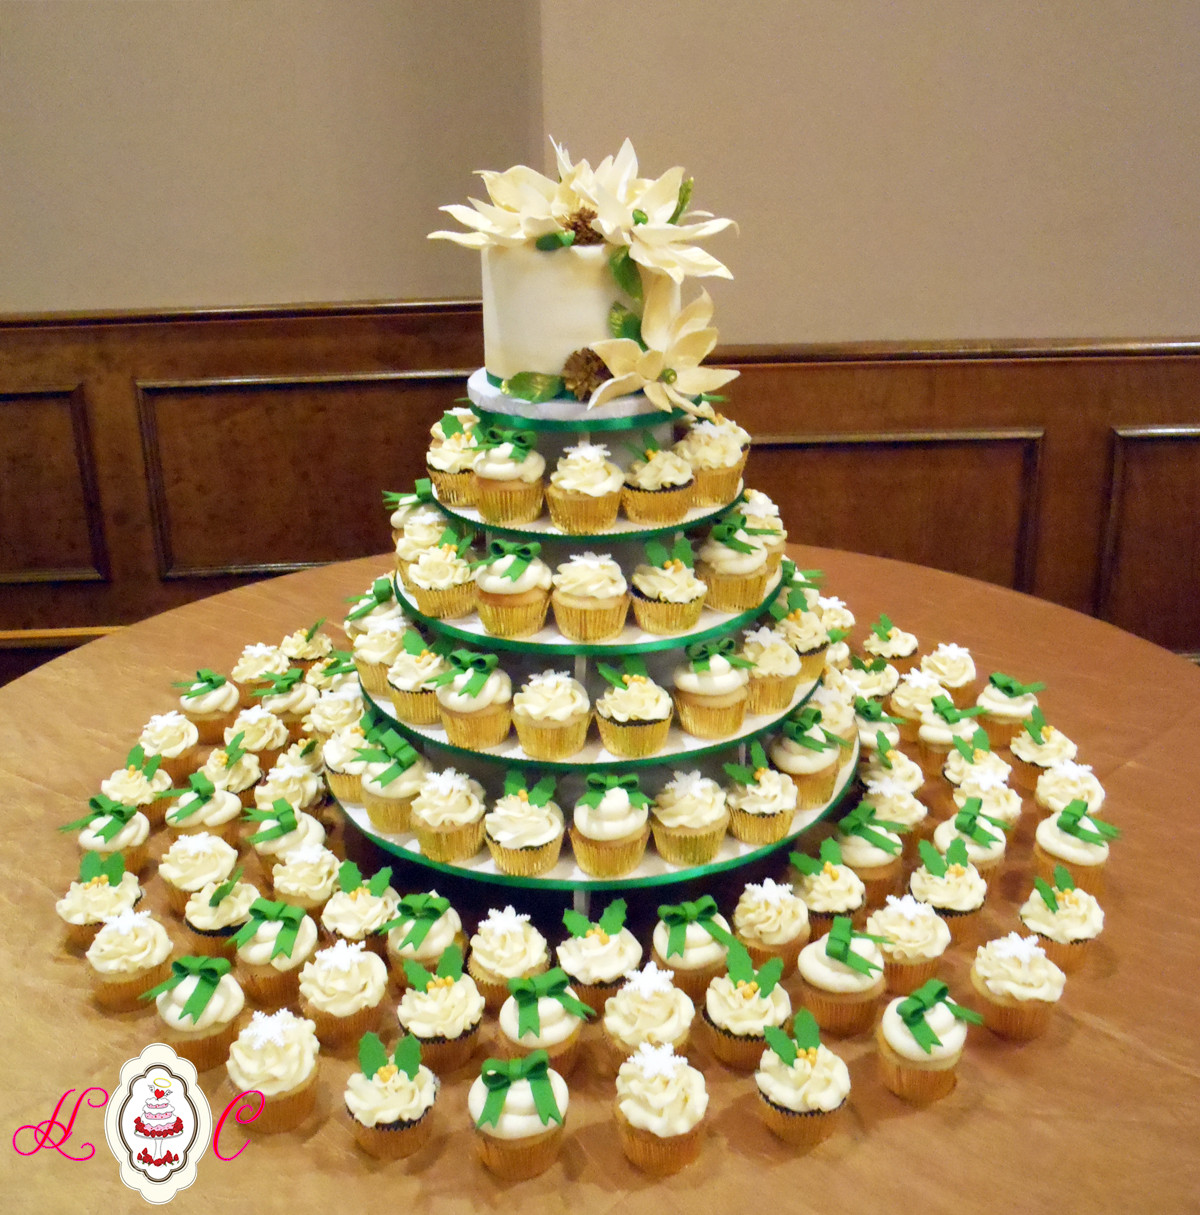 Wedding Cupcakes Towers  Wedding Cakes in Marietta Parkersburg & More Heavenly